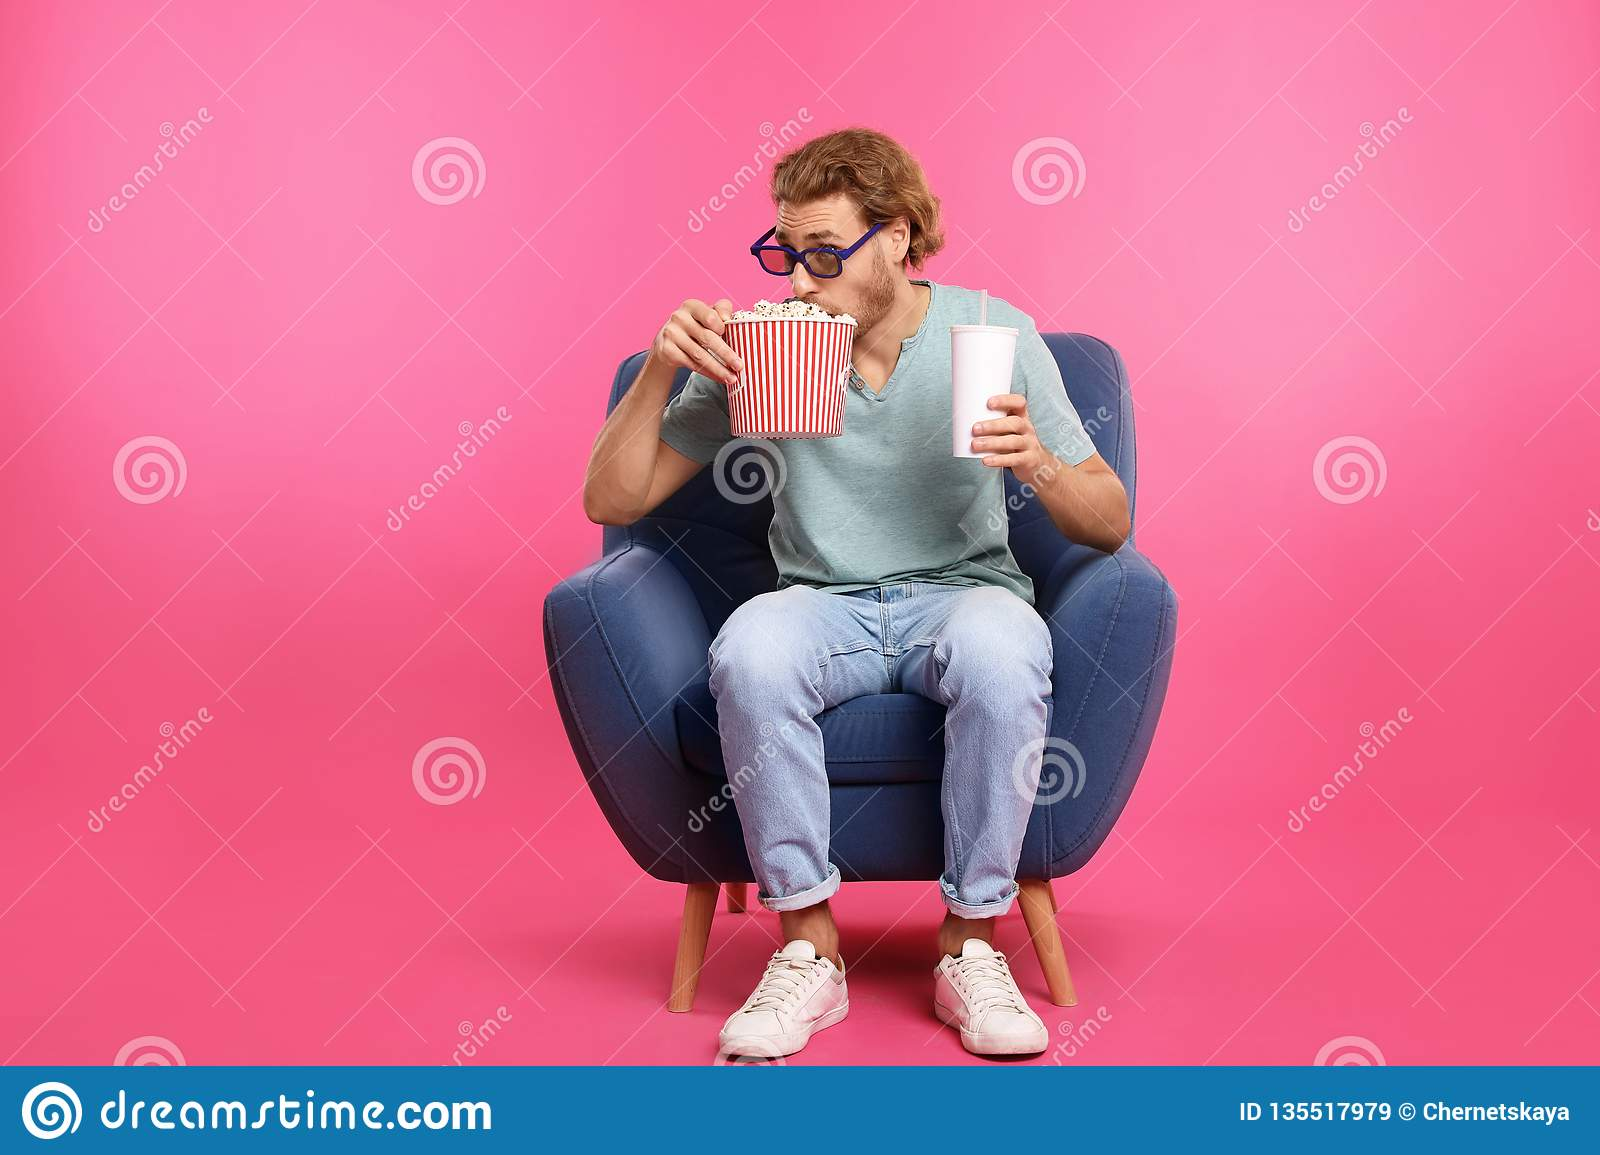 Man with 3D glasses, popcorn and beverage sitting in armchair during cinema show